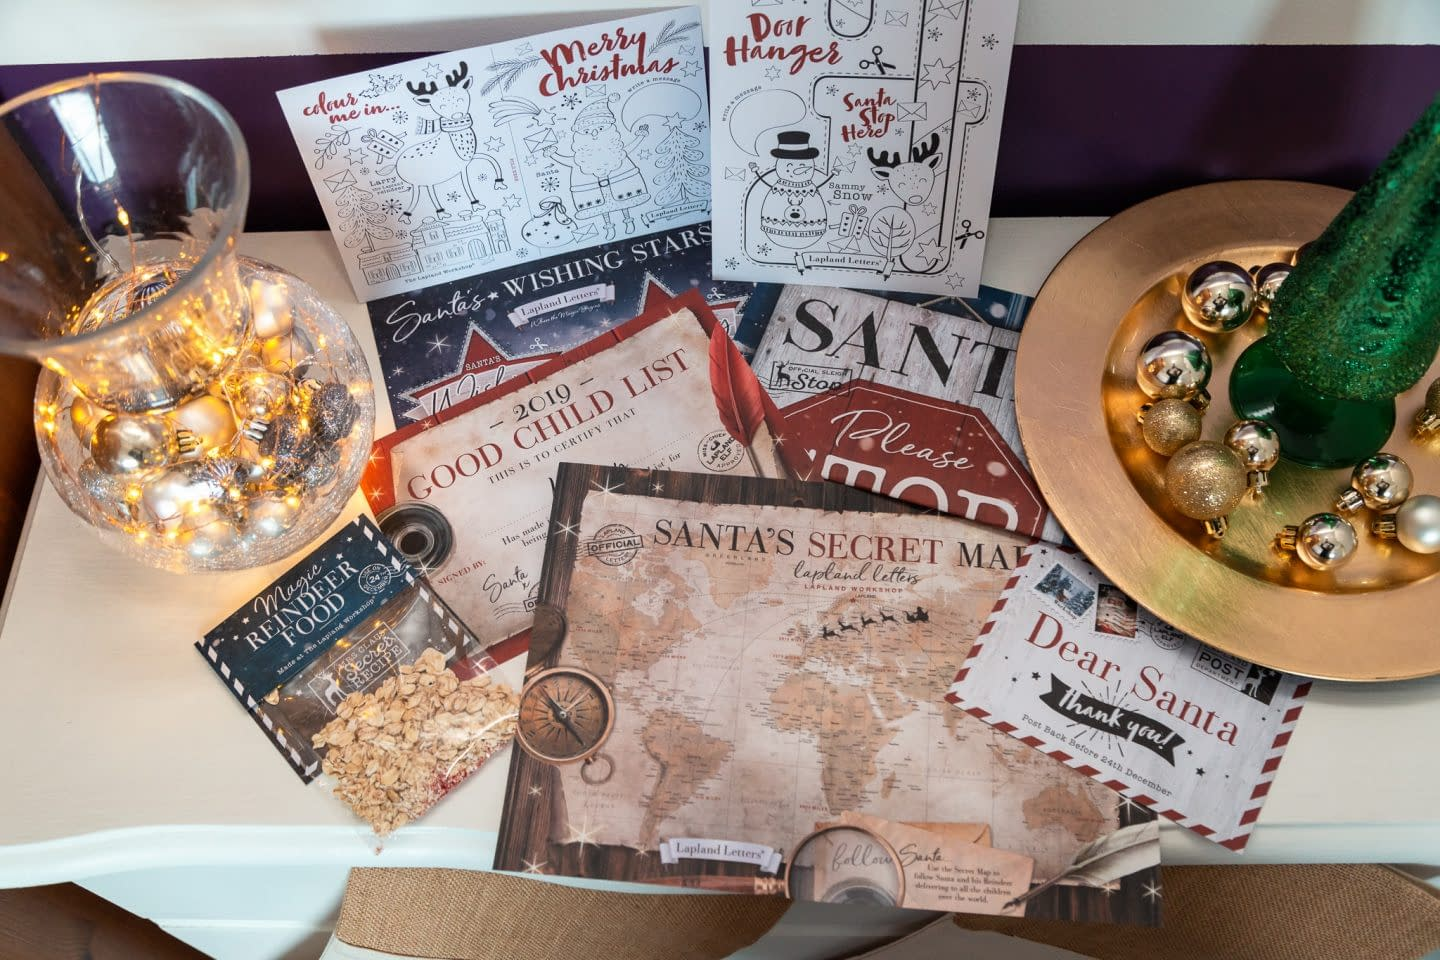 The best letter from Santa. Our review of Lapland Letters